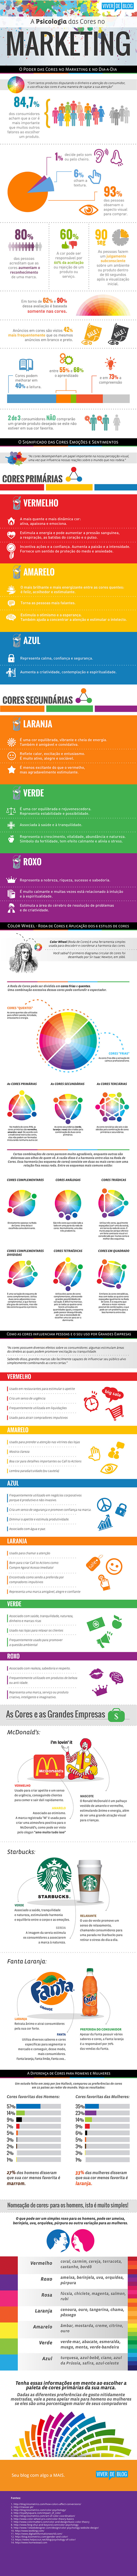 5b9b3728c9a A Psicologia das Cores no Marketing e no Dia-a-Dia